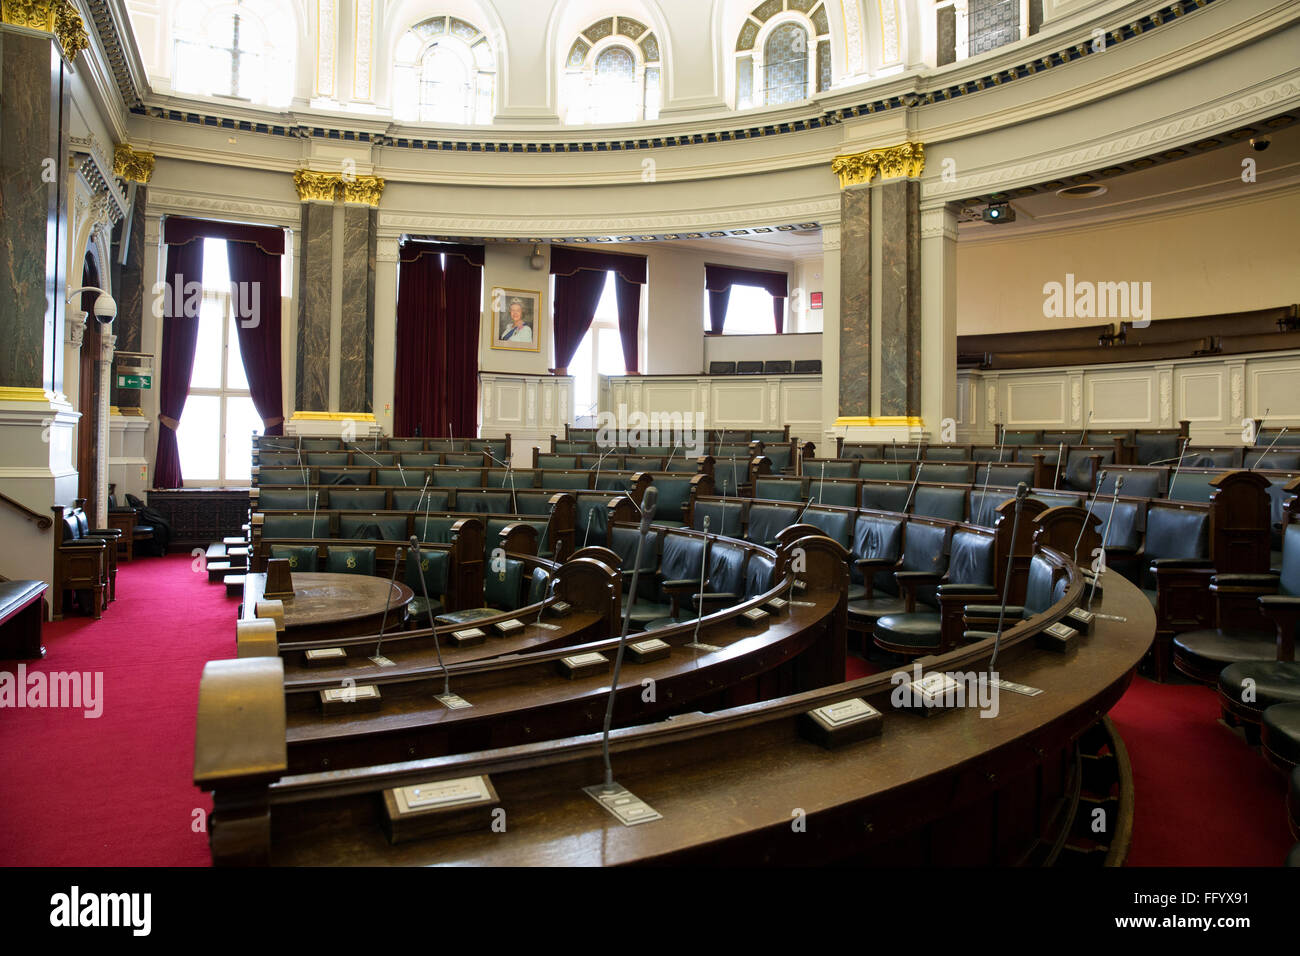 The main debating Chamber in the Council House, Birmingham, UK. - Stock Image